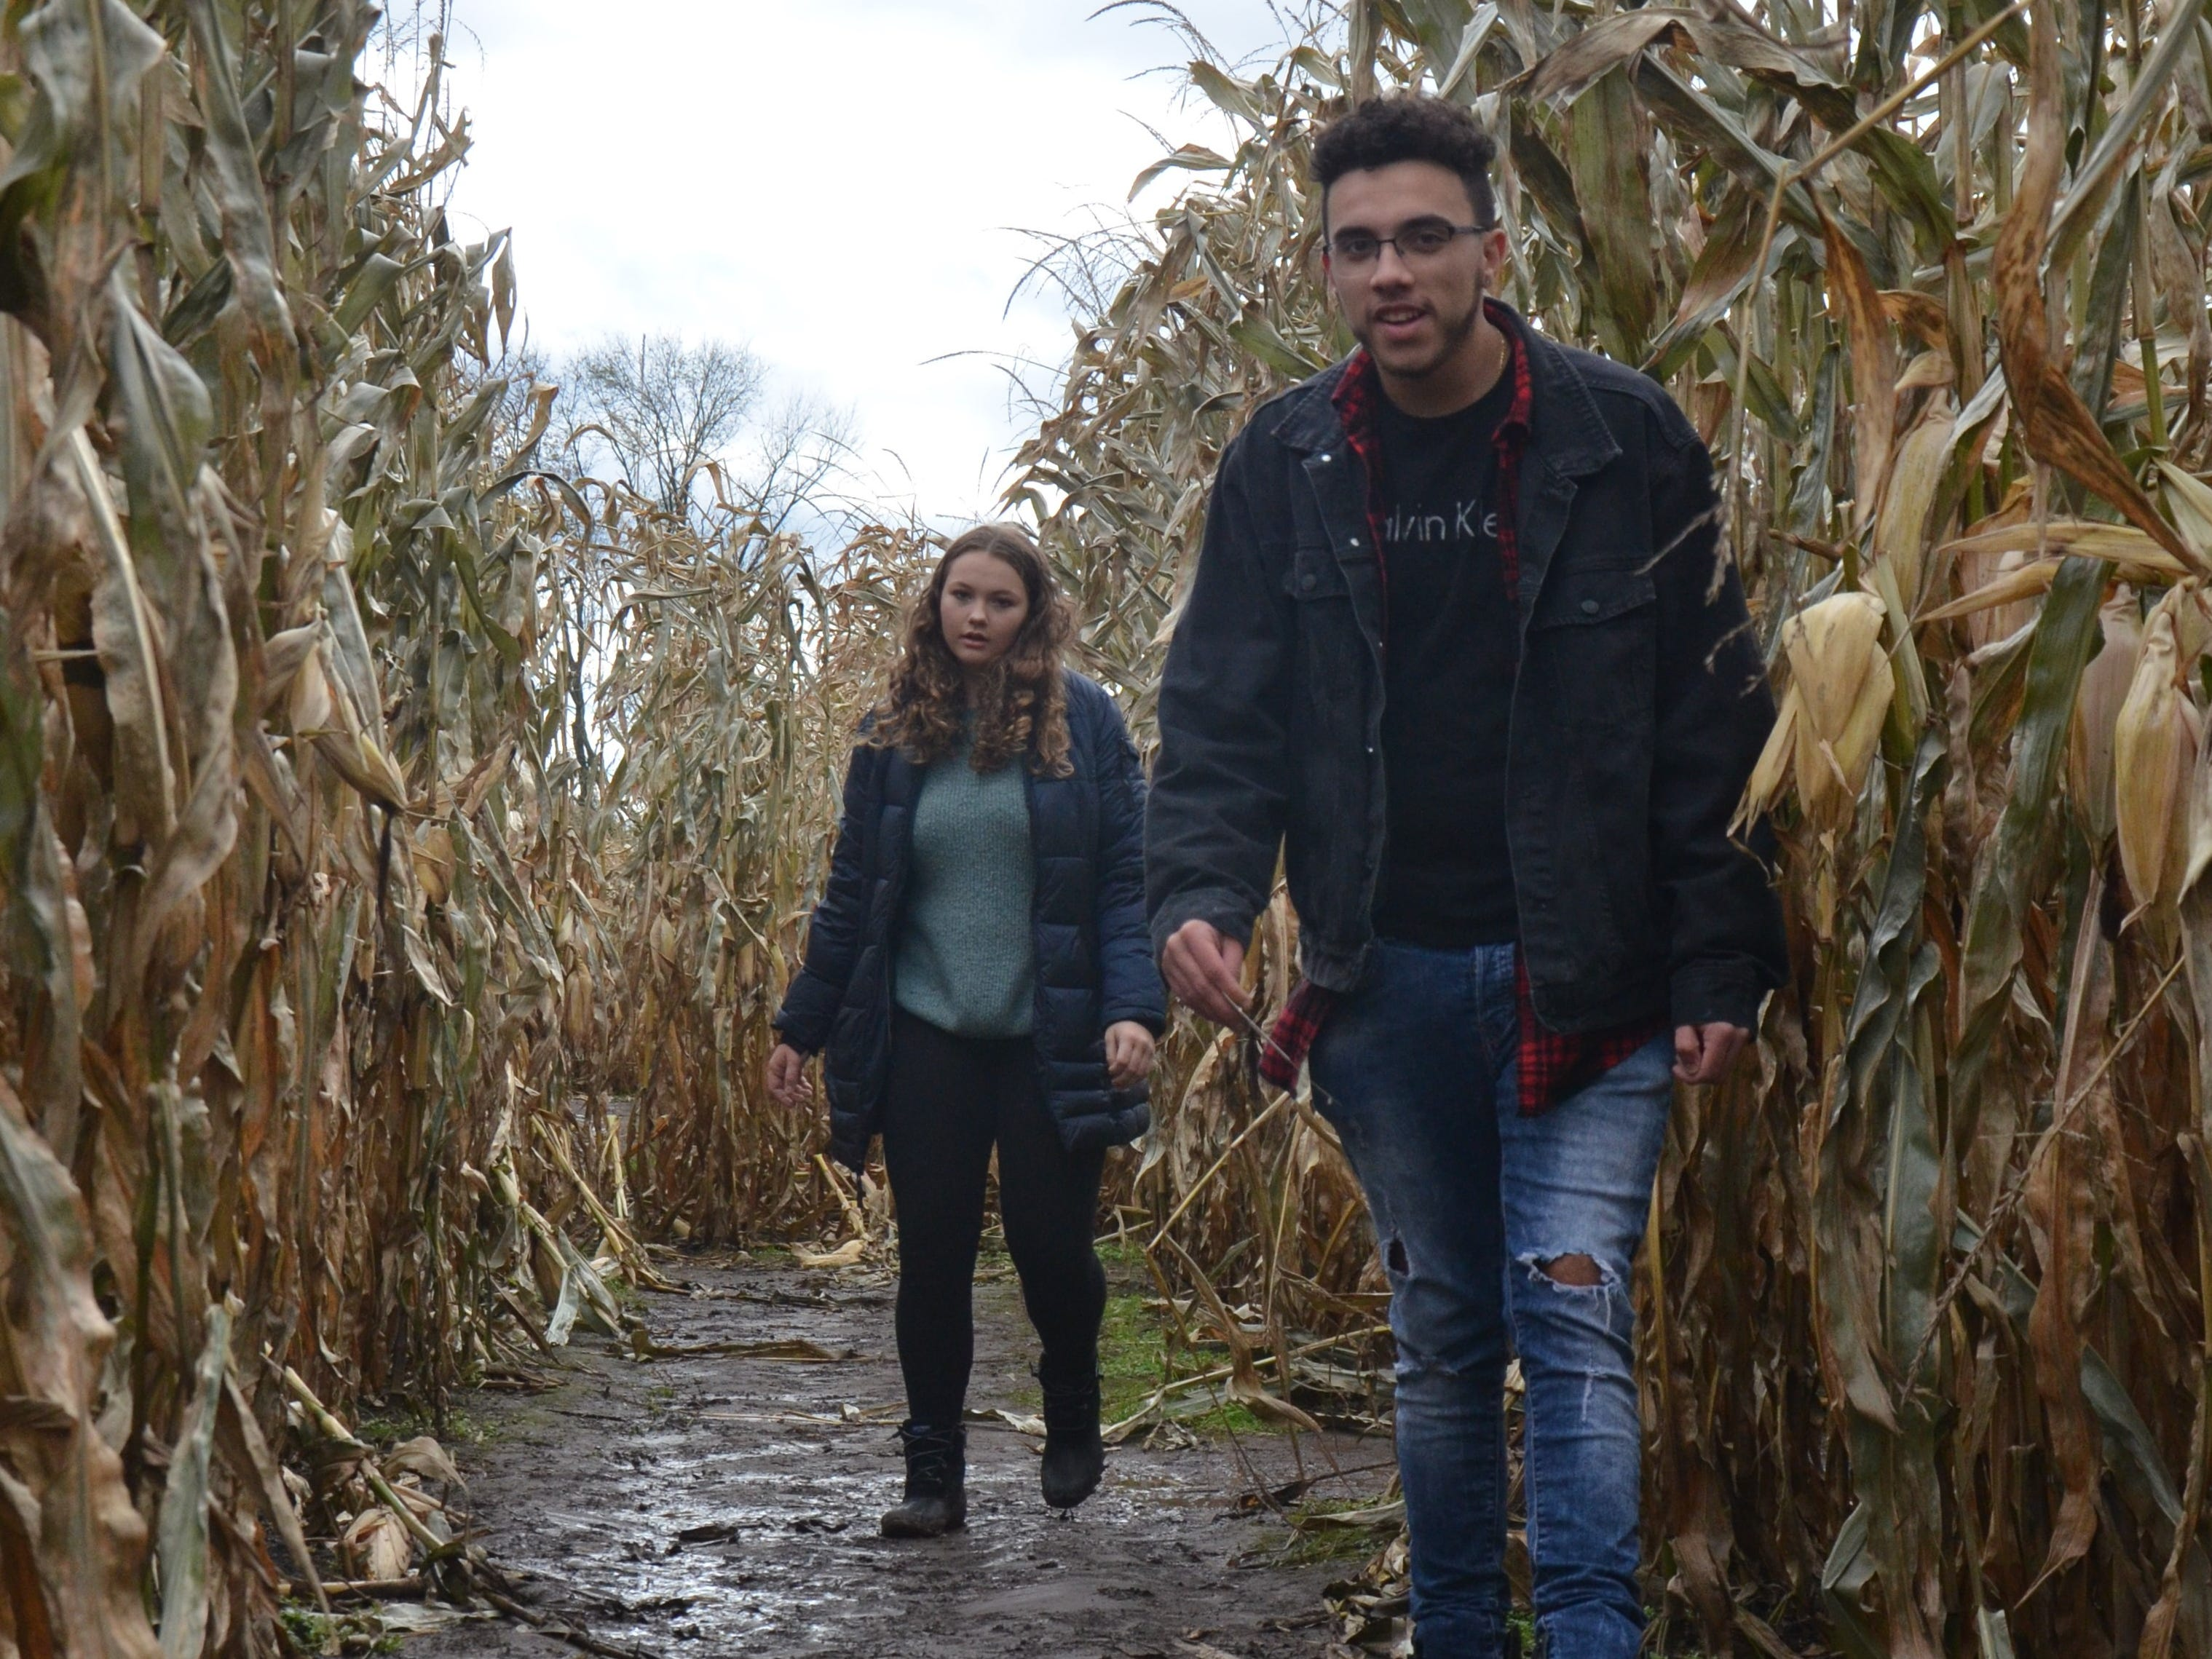 Jaylen Clark (right), 18, of Kalamazoo and Lindsey Peterson, 14, of Portage, finish the corn maze at Gull Meadow Farms in Richland on Sunday, October 21, 2018.